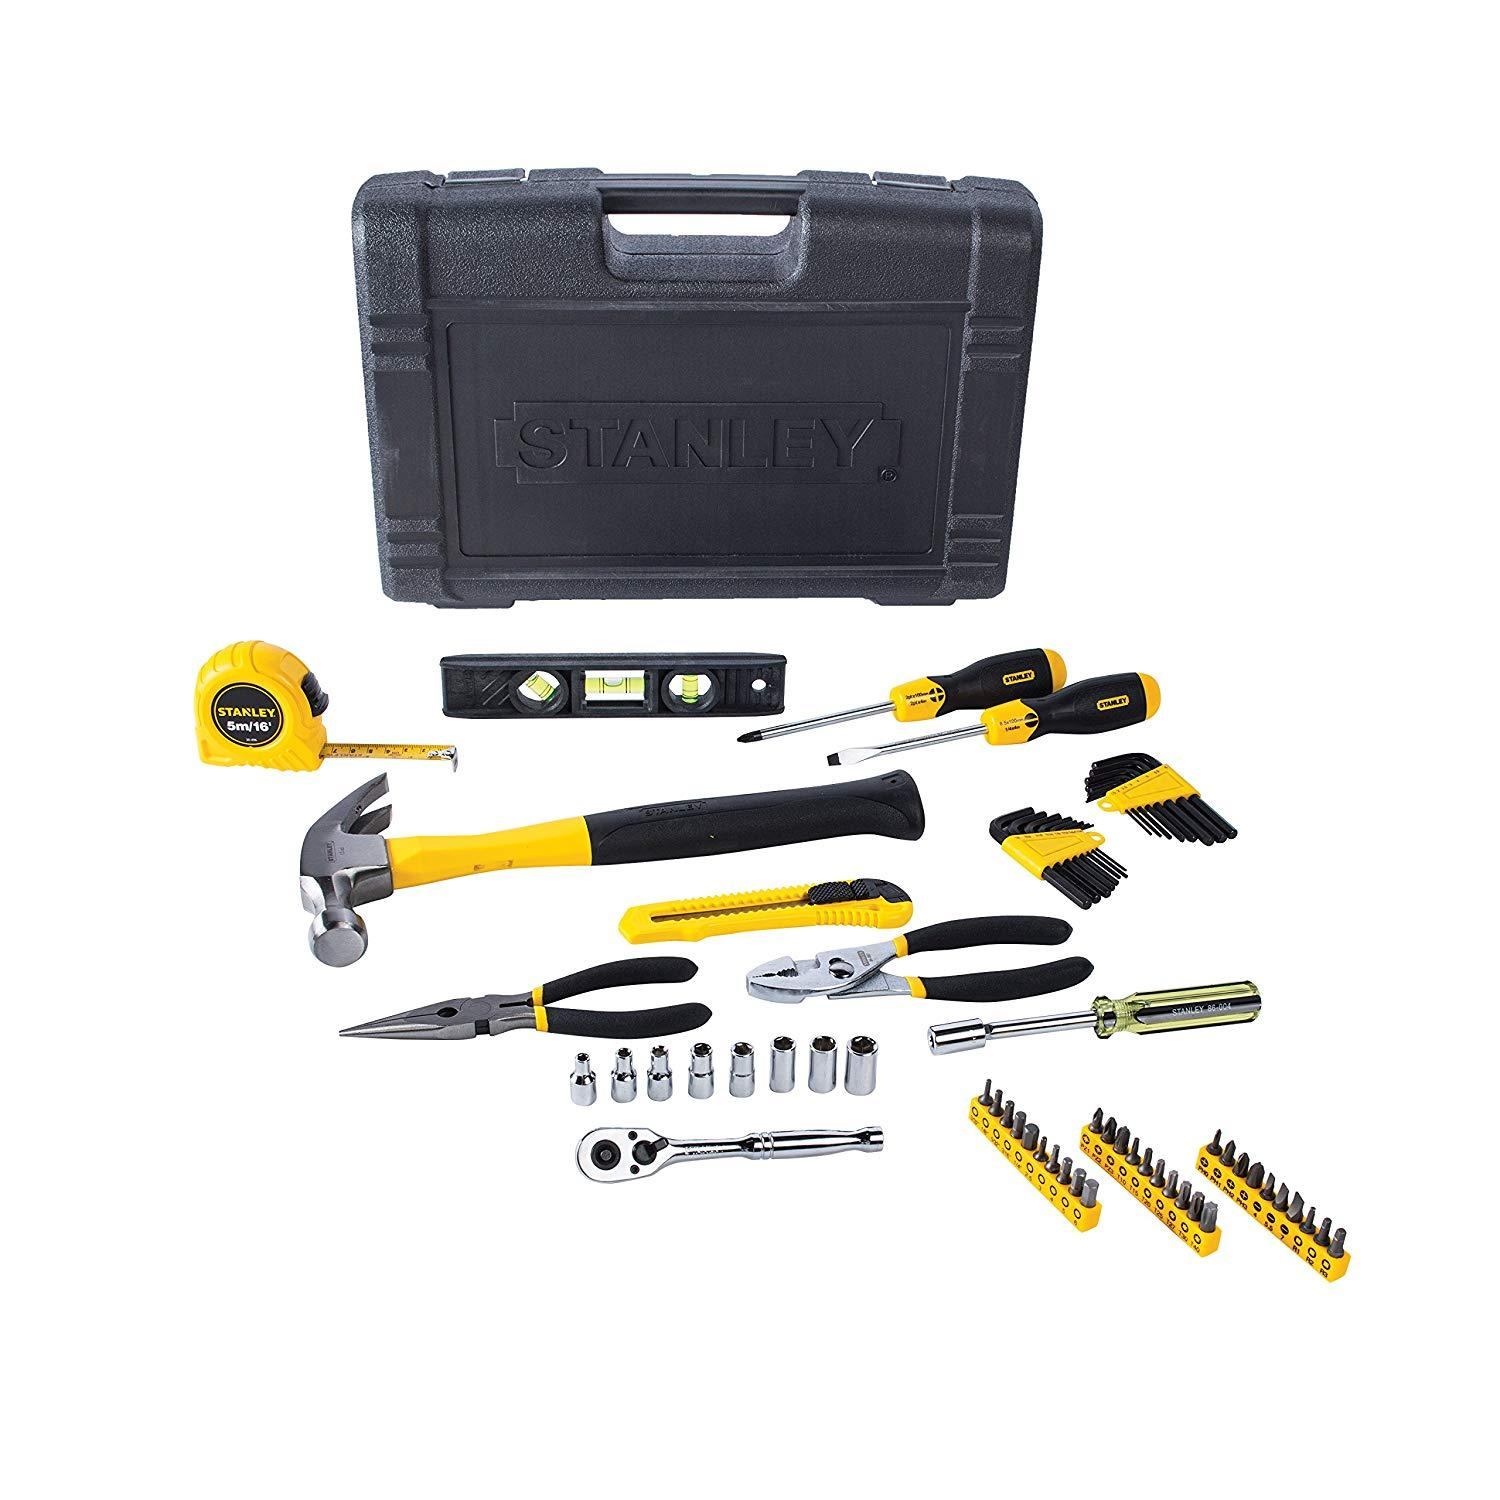 Gift Ideas in Tools & Home Improvement